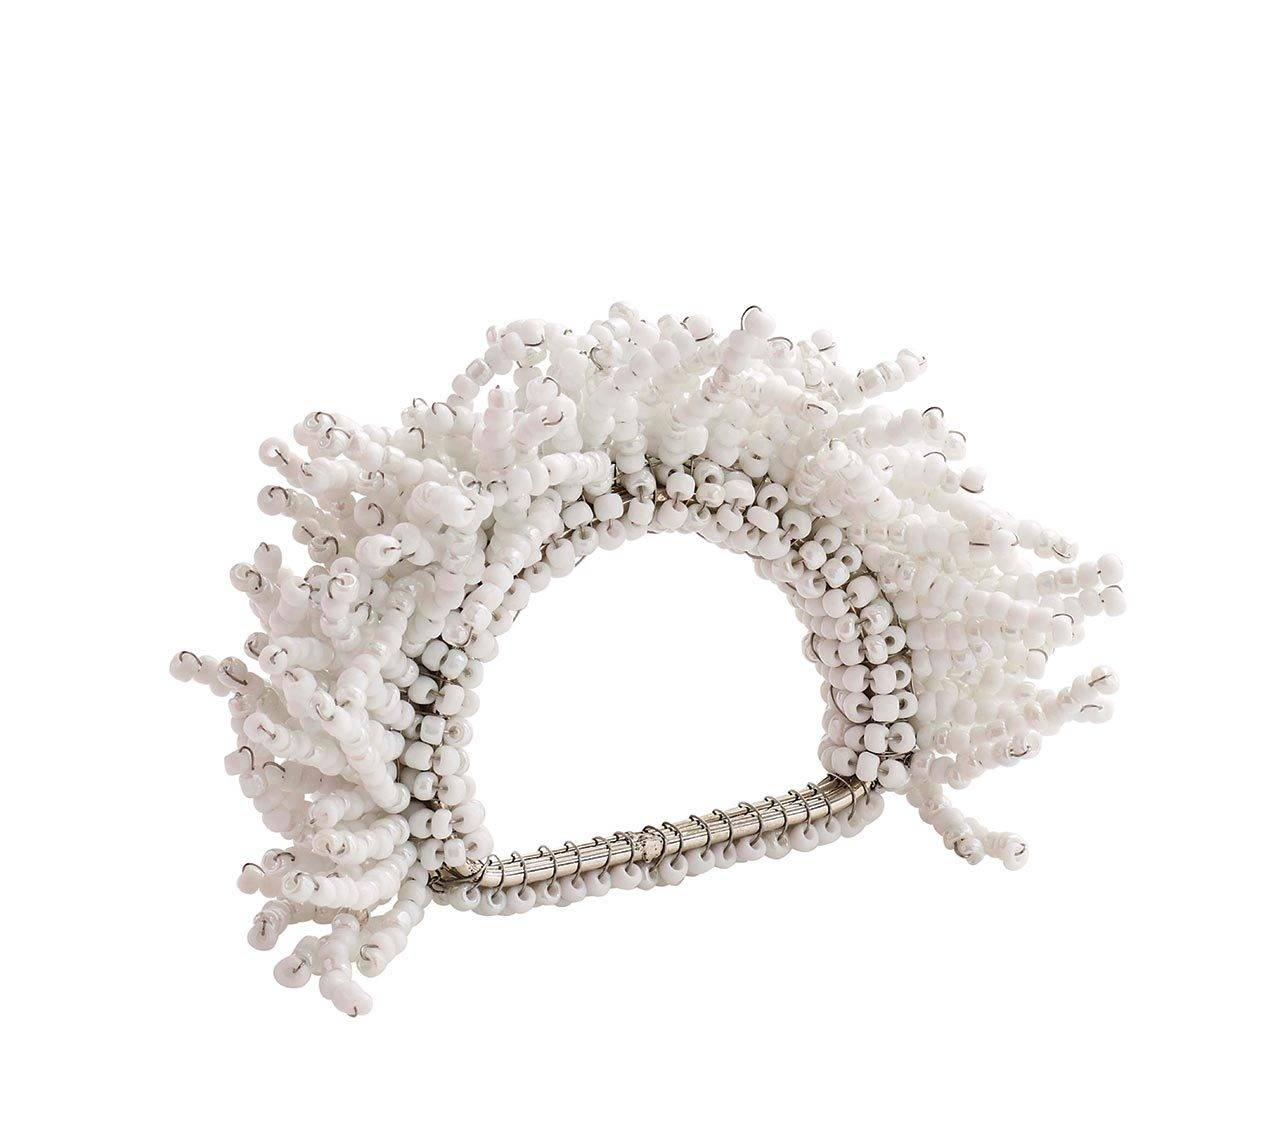 CARNIVAL NAPKIN RING IN WHITE